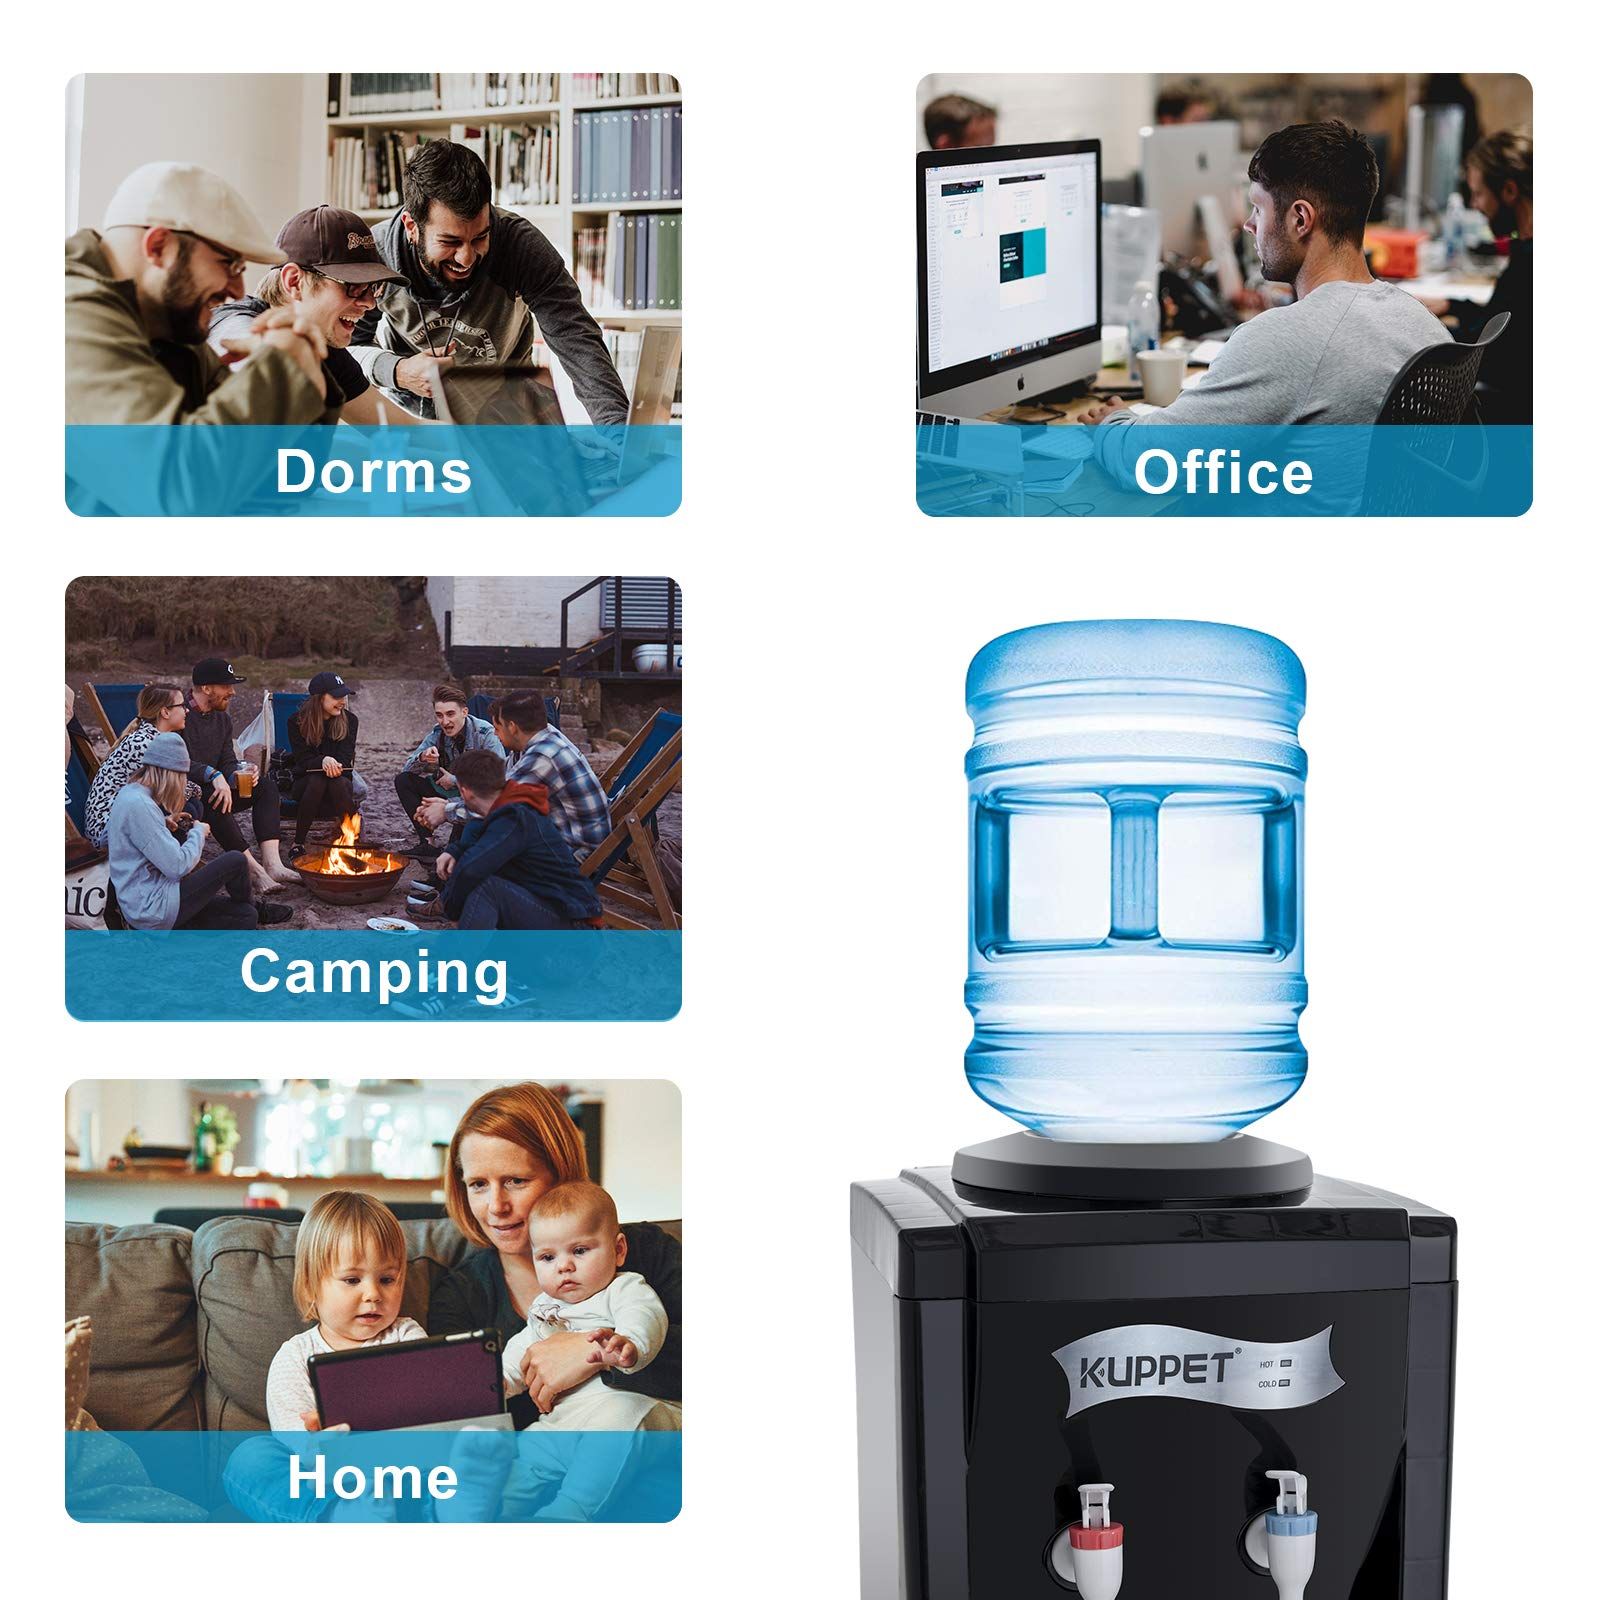 KUPPET 3-5 Gallon Countertop Water Cooler Dispenser-Hot & Cold Water, ideal For Home Office Use(17'', Black) by KUPPET (Image #3)